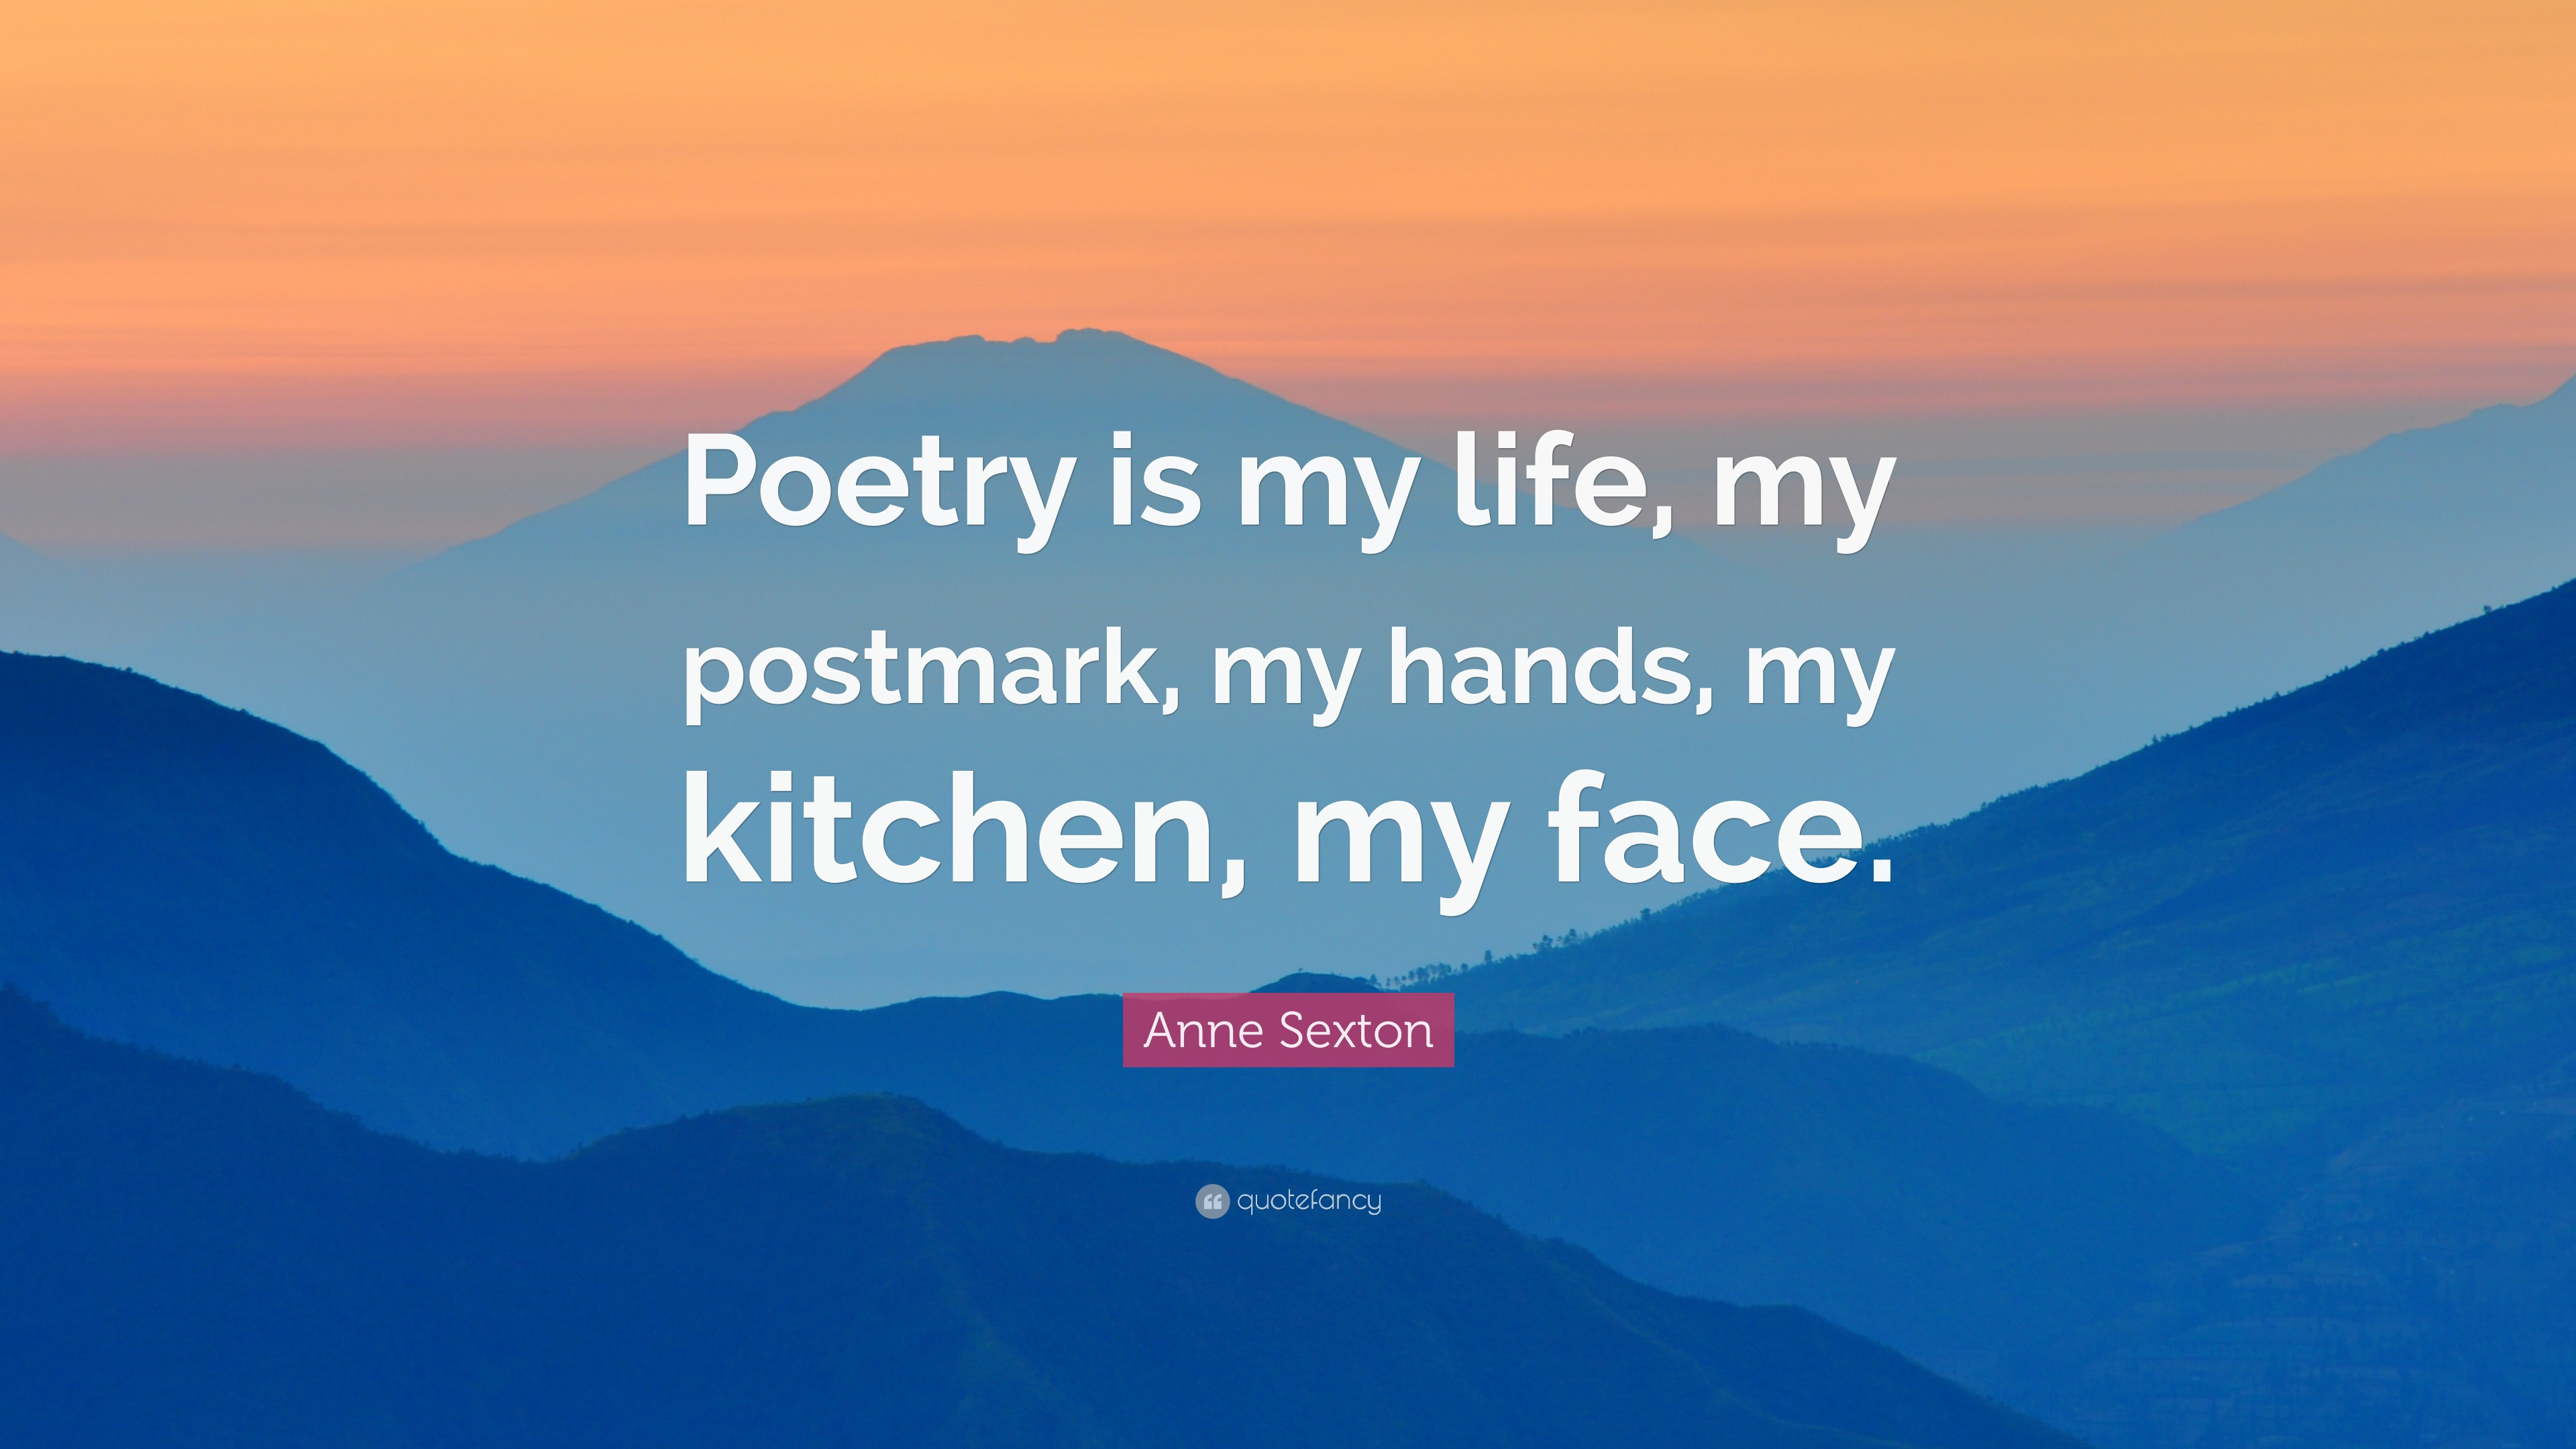 Delicieux Anne Sexton Quote: U201cPoetry Is My Life, My Postmark, My Hands,